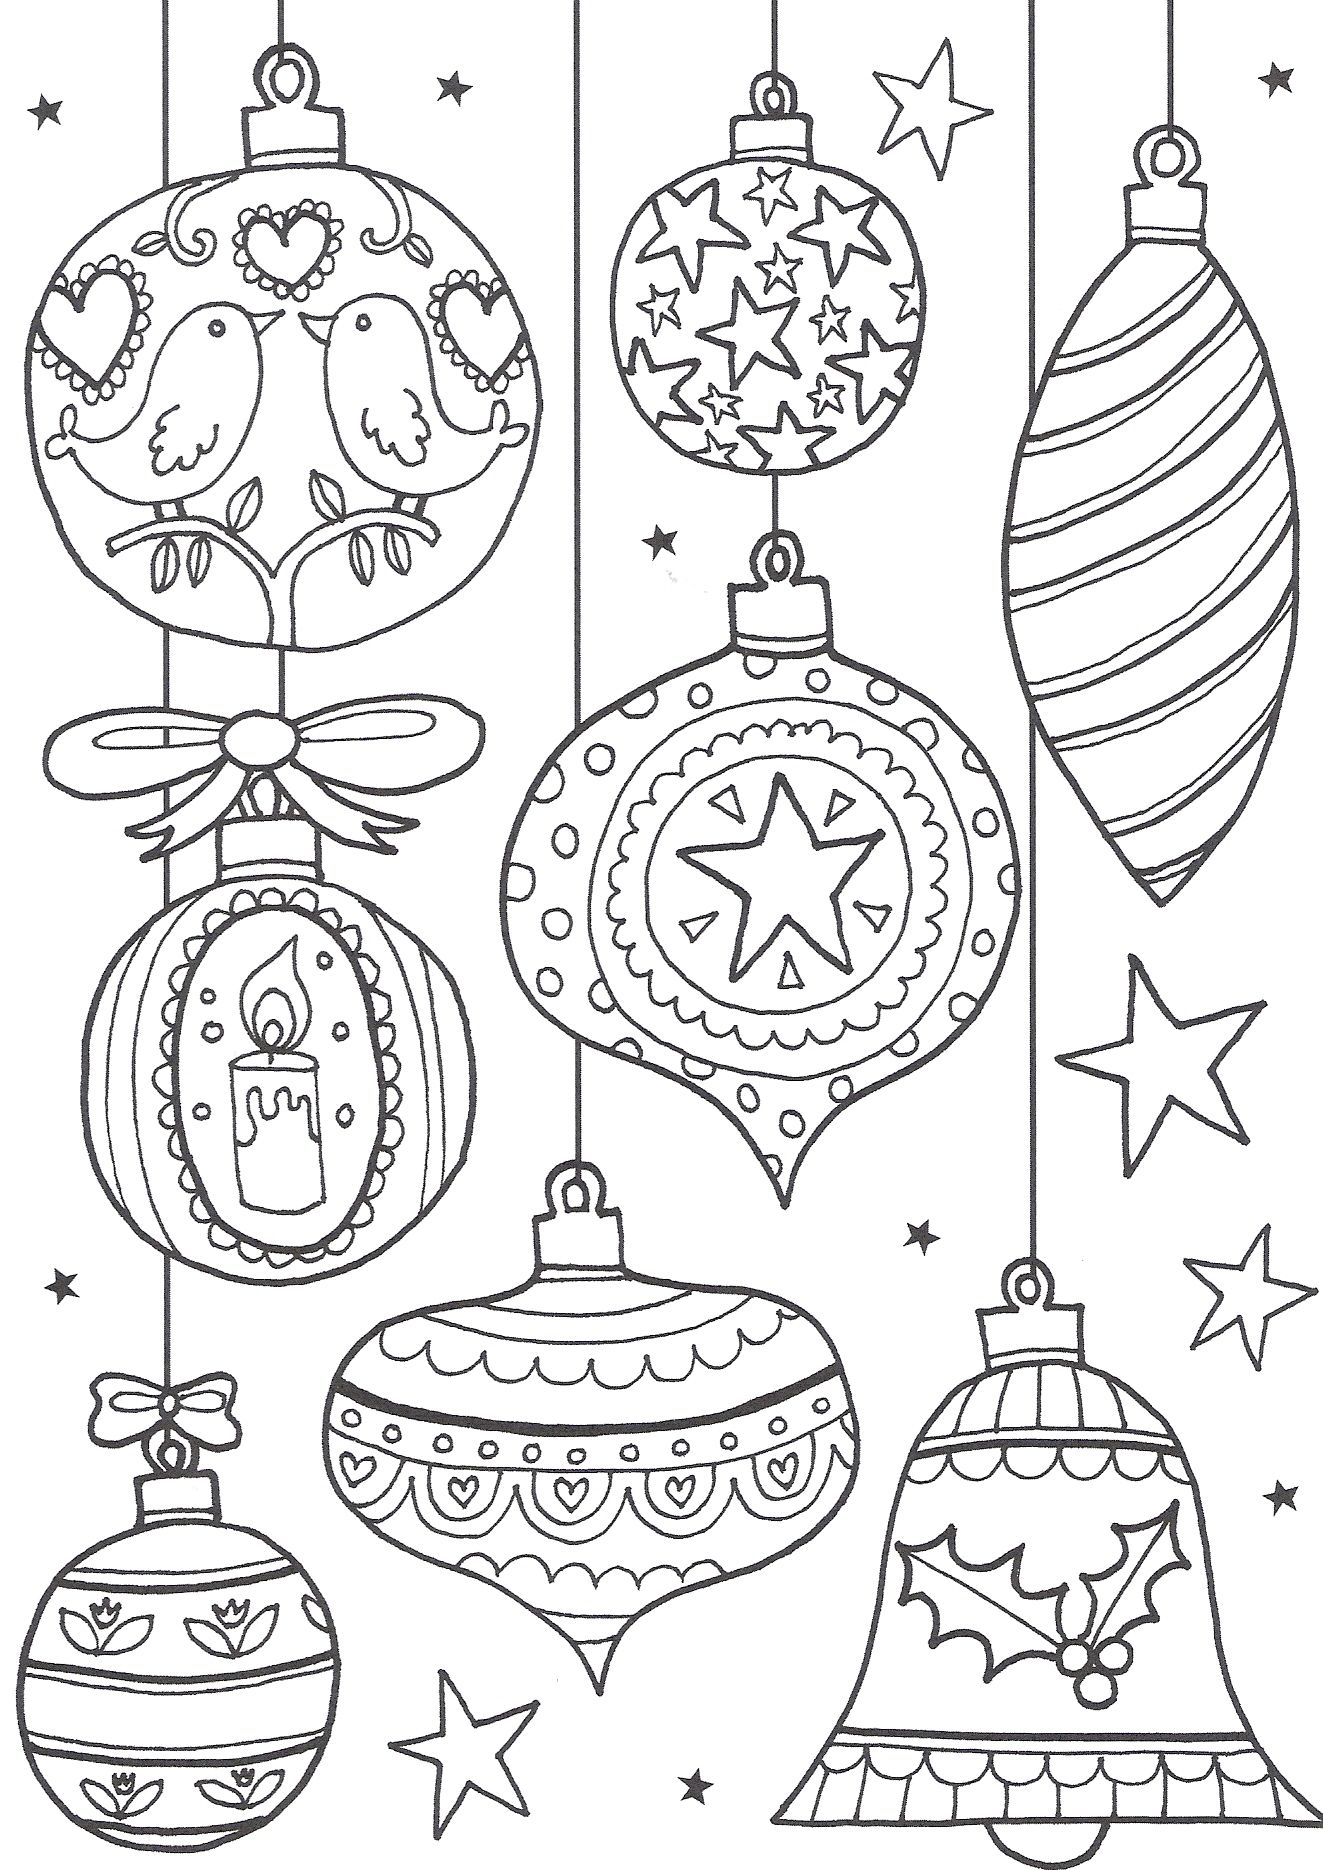 Free Printable Christmas Coloring Book Pages With Colouring For Adults The Ultimate Roundup